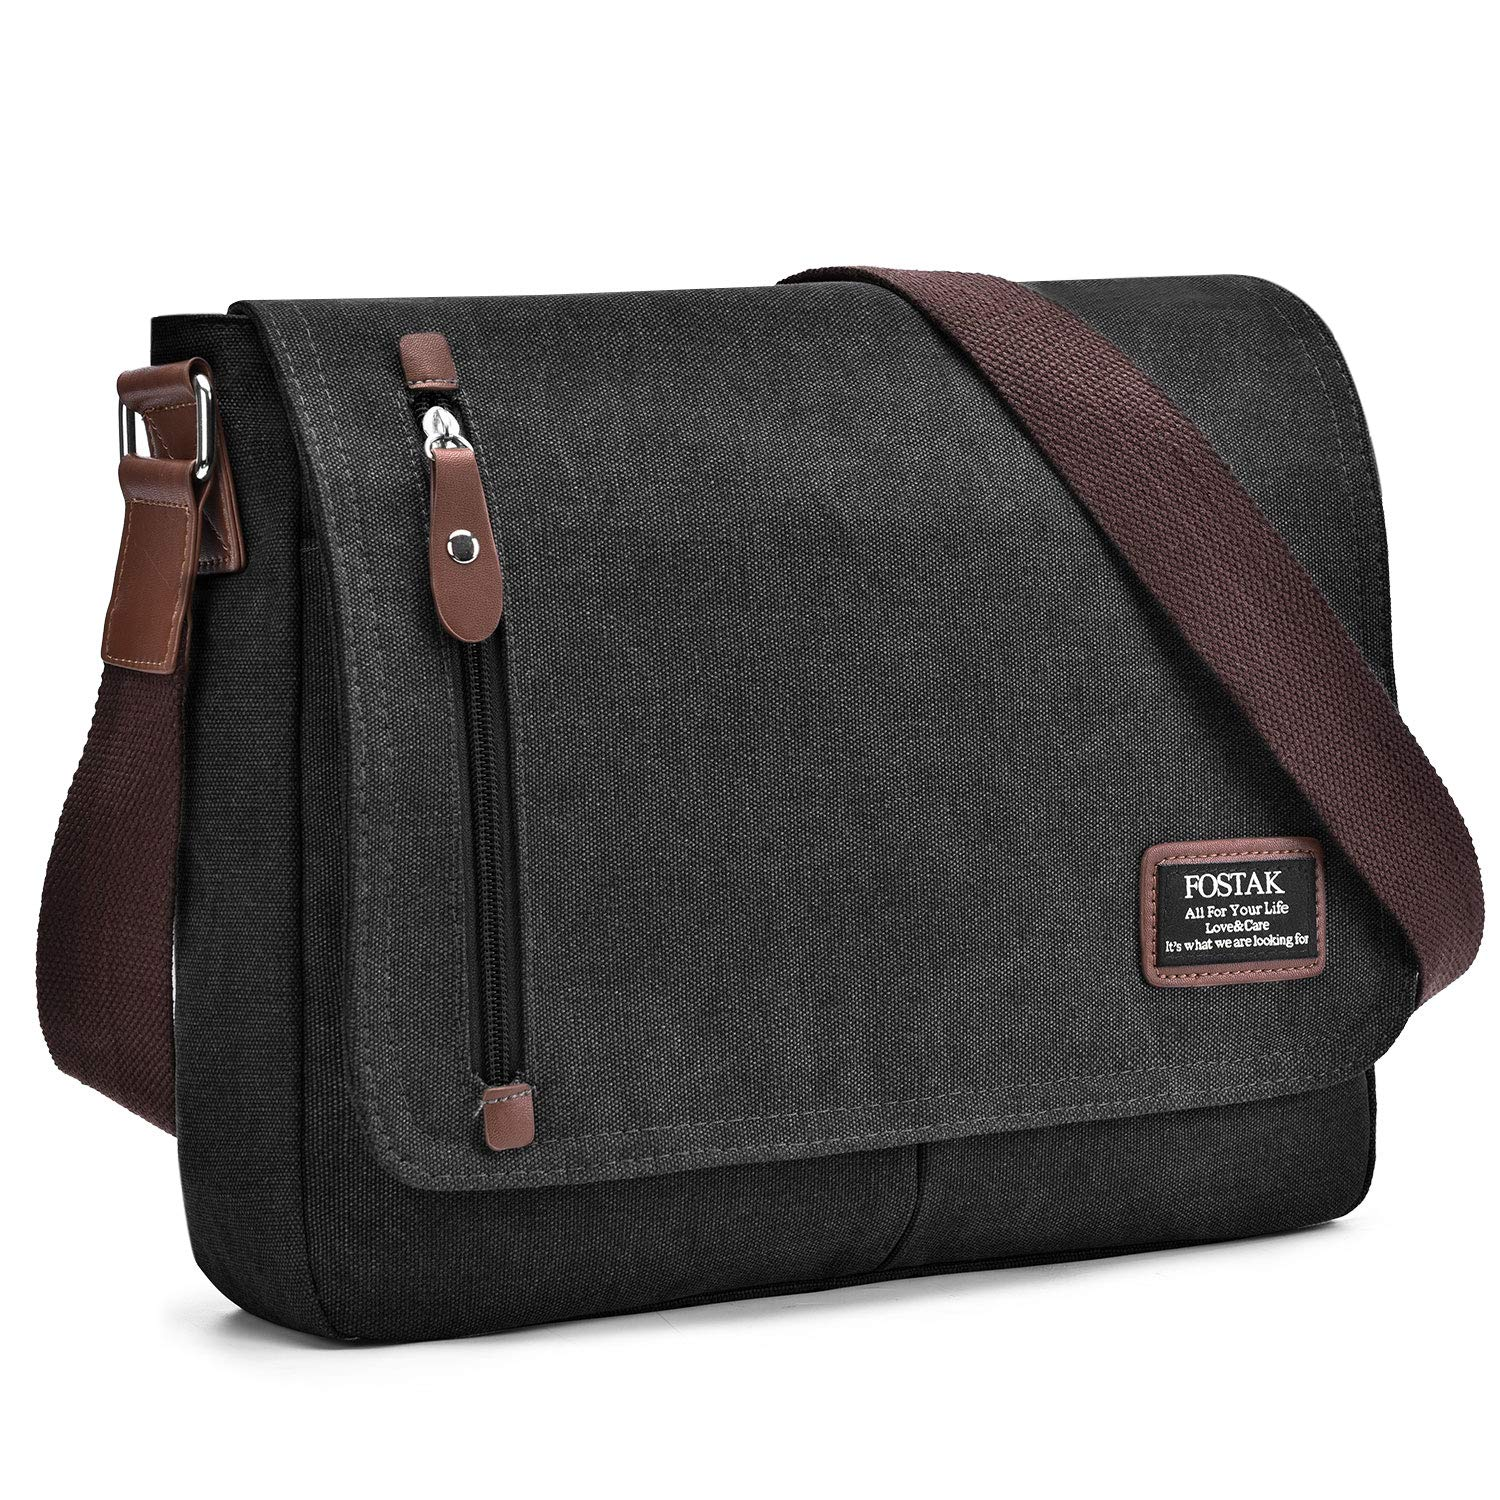 e809efcbb370 Messenger Bag 13.3 Inch for Men and Women Durable Canvas Shoulder Bag  Lightweight Briefcase Portable College Satchel for School Work Travel and  Daily Use